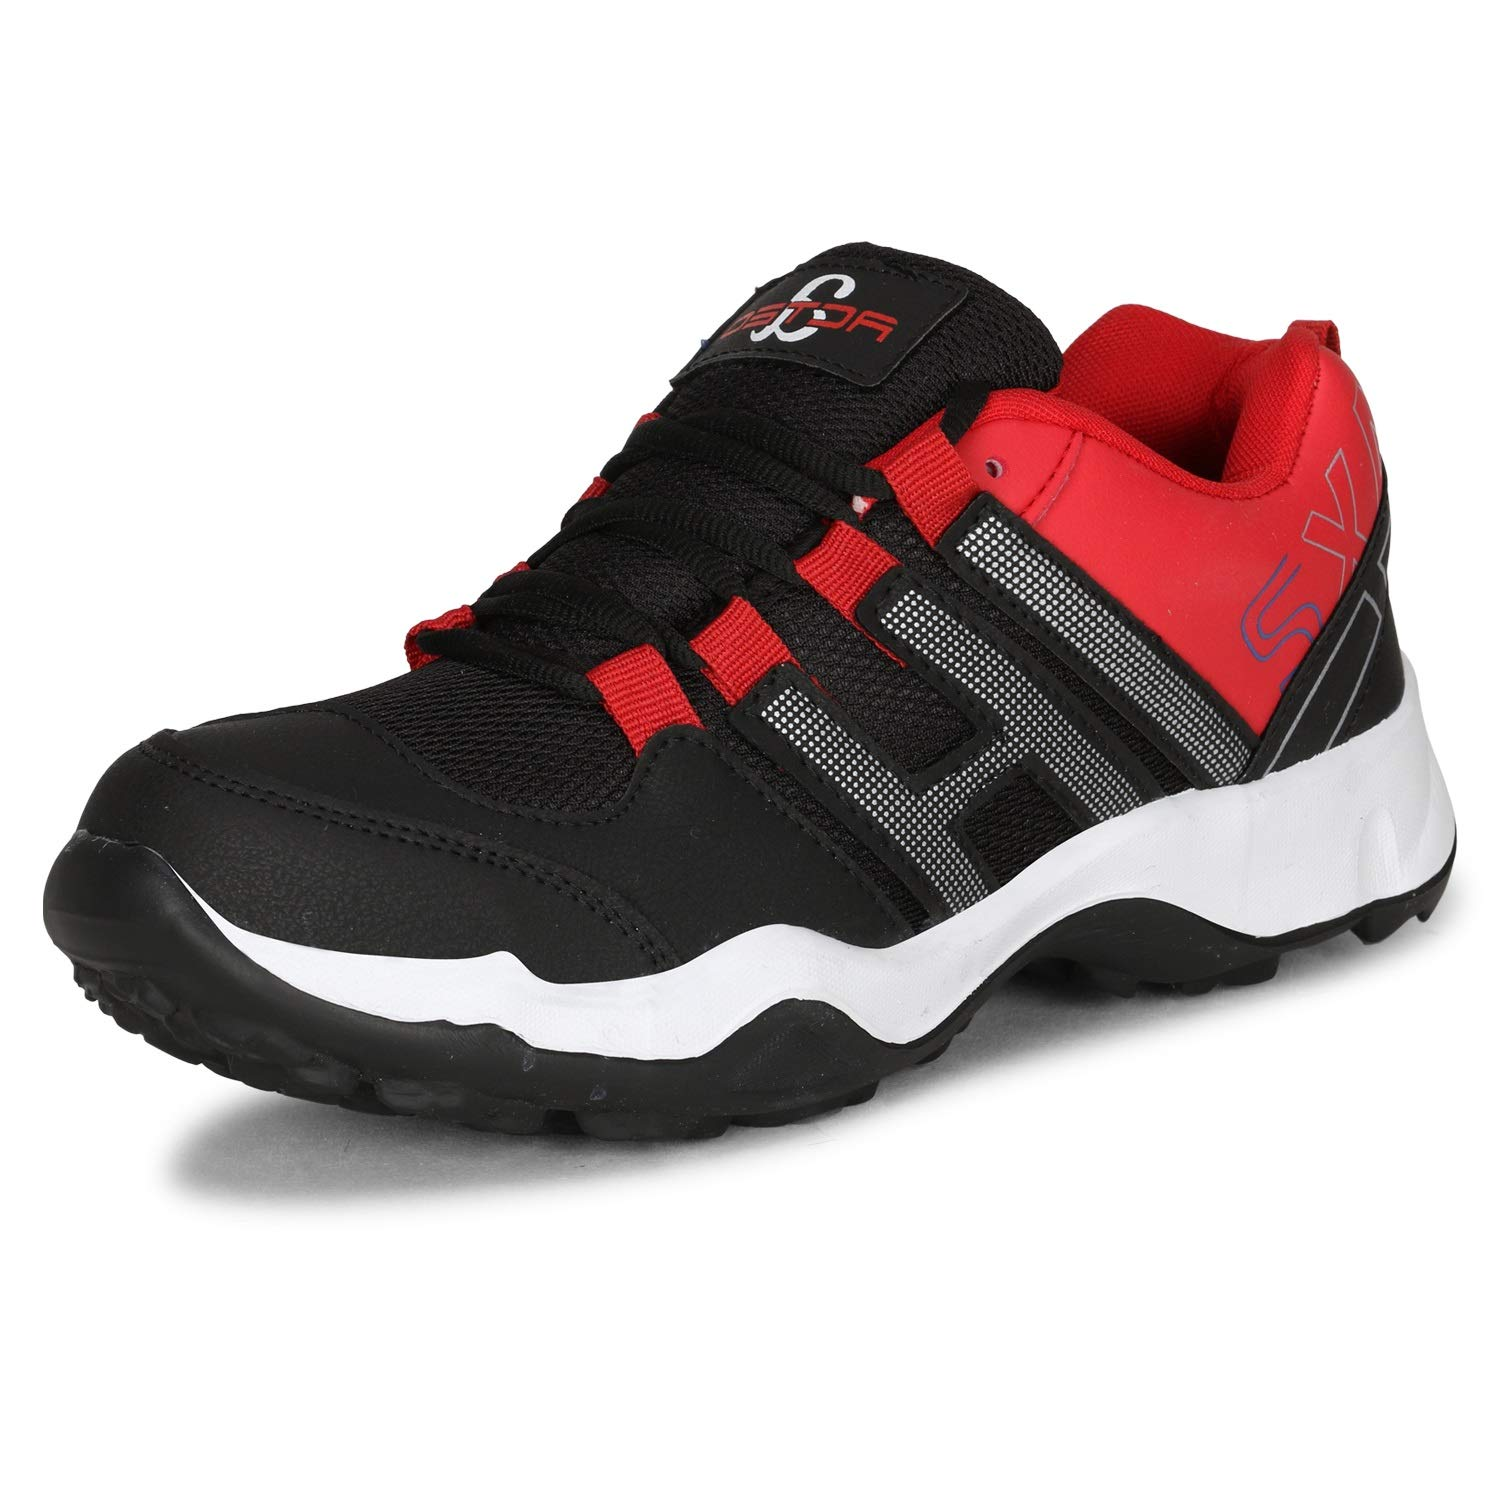 best running shoes under 500 in sale on amazon